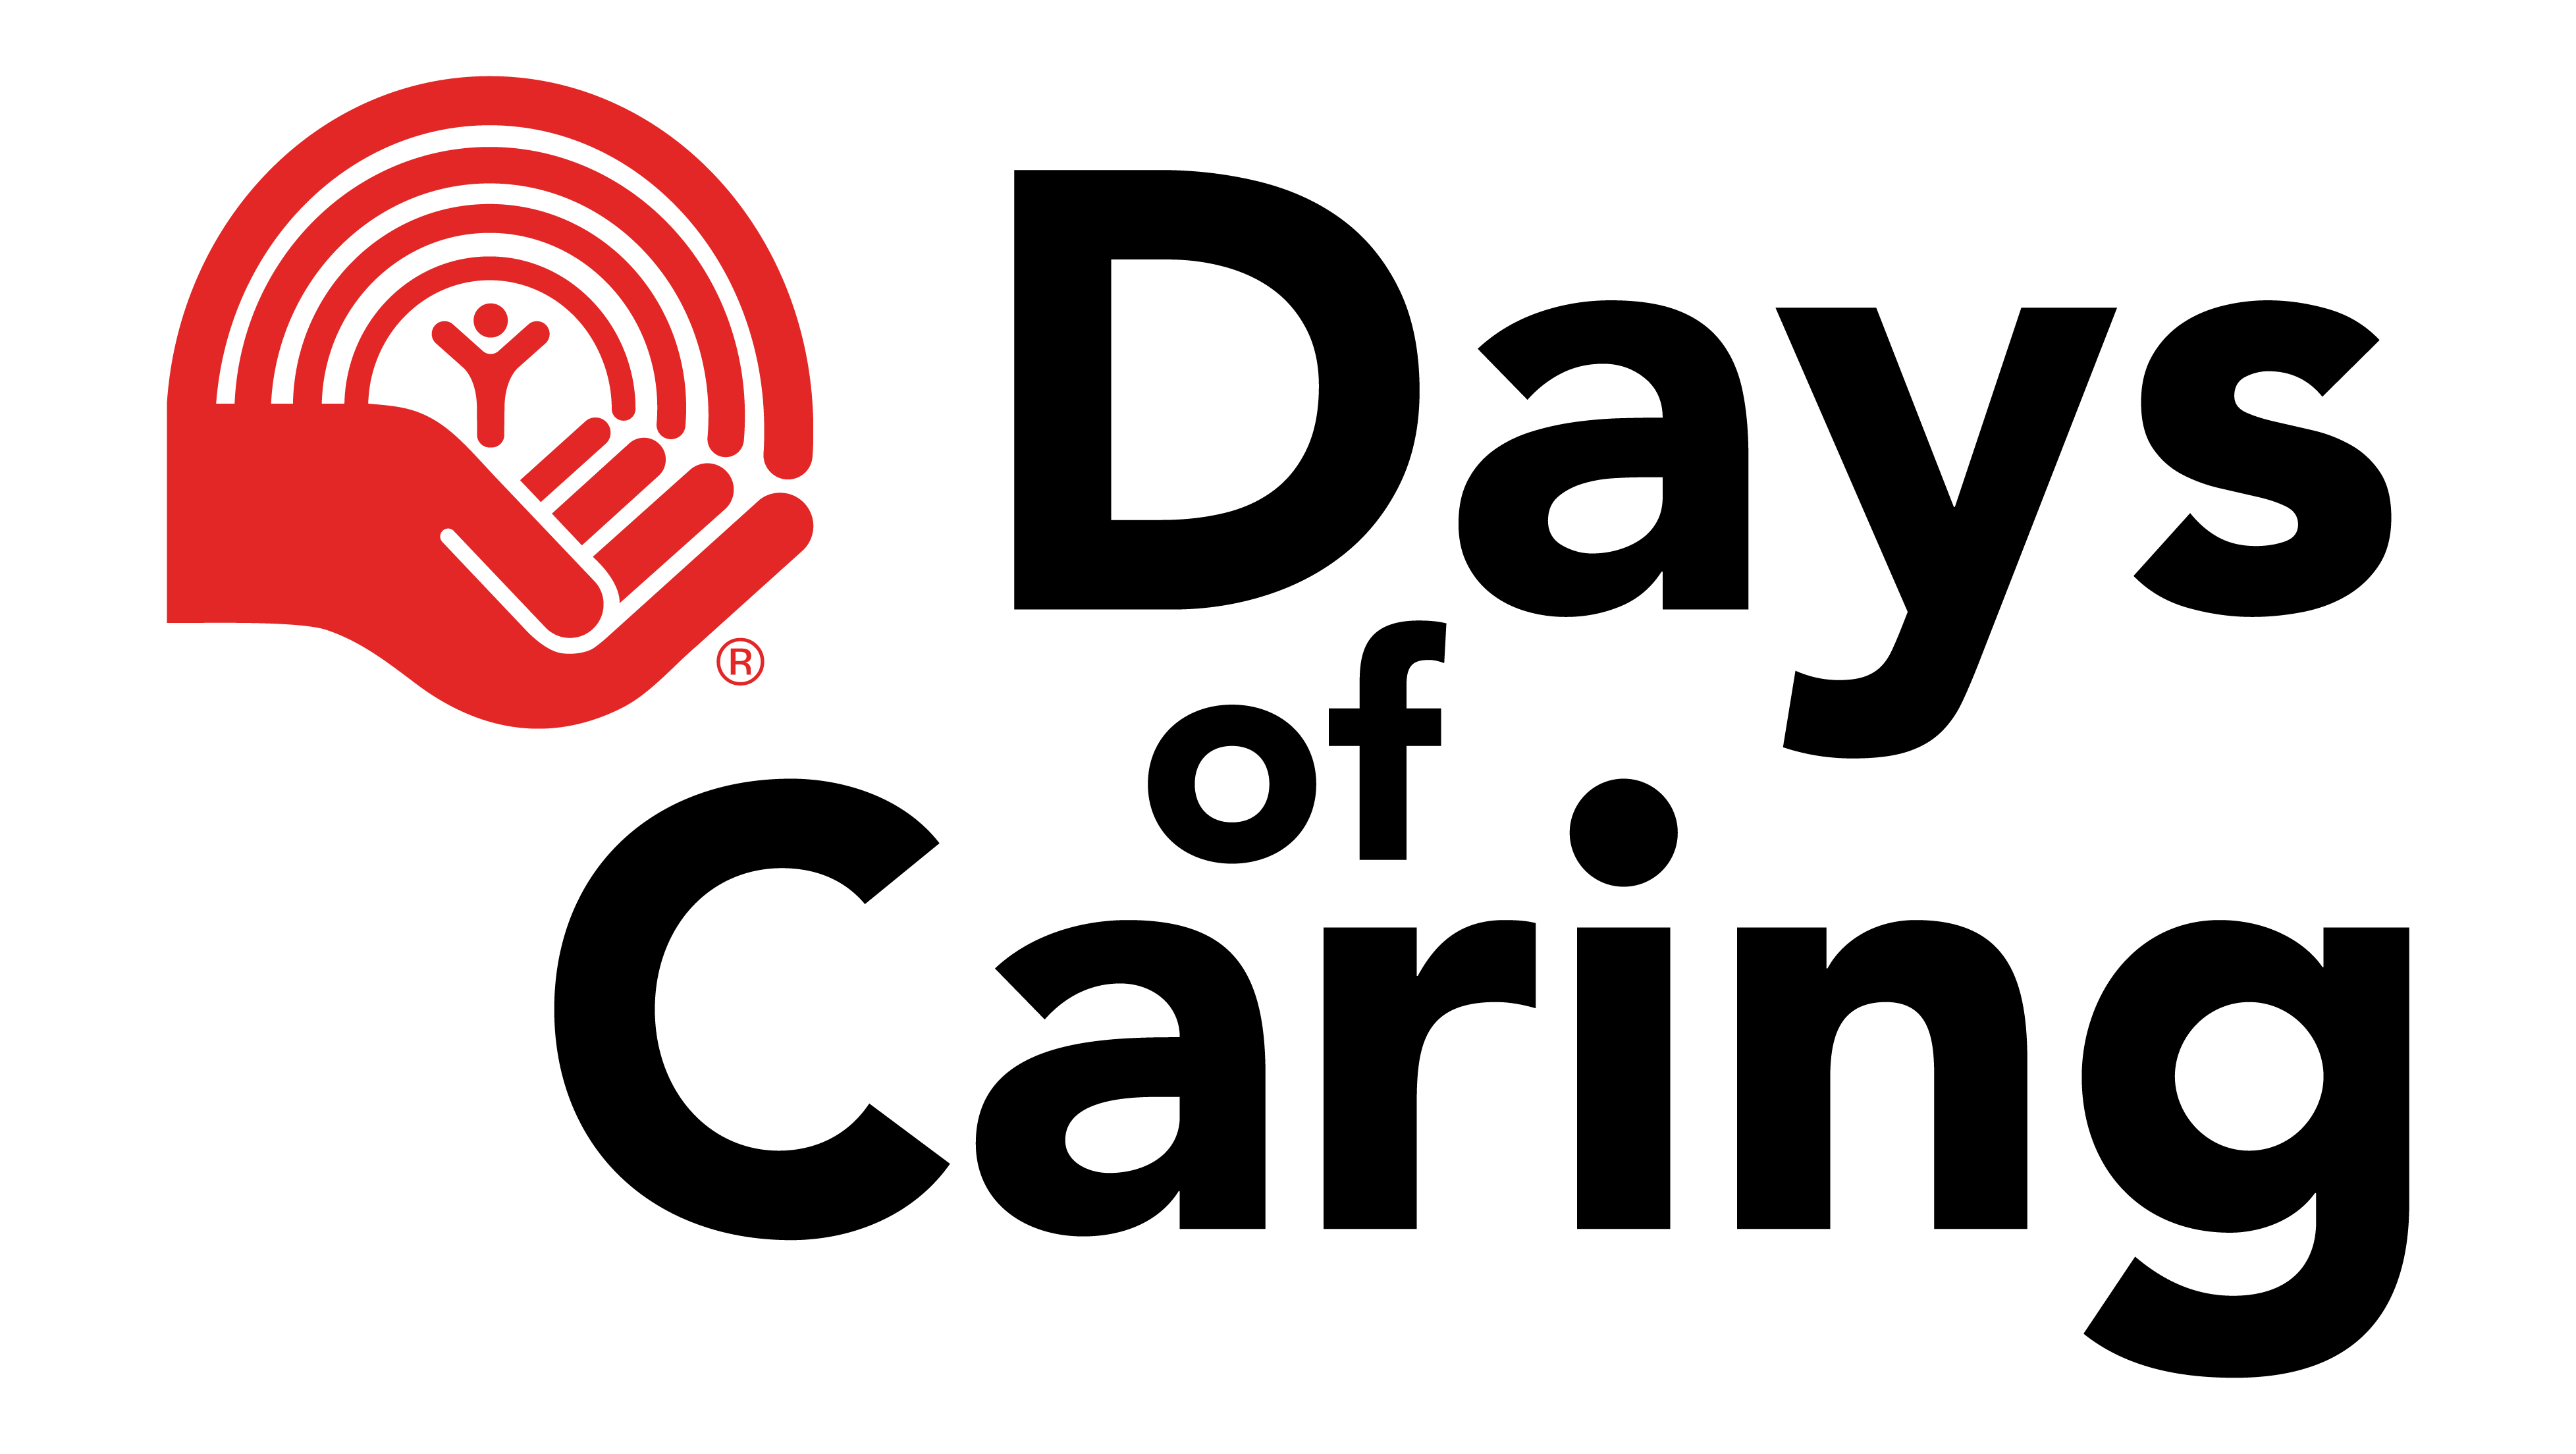 Days of Caring with logo